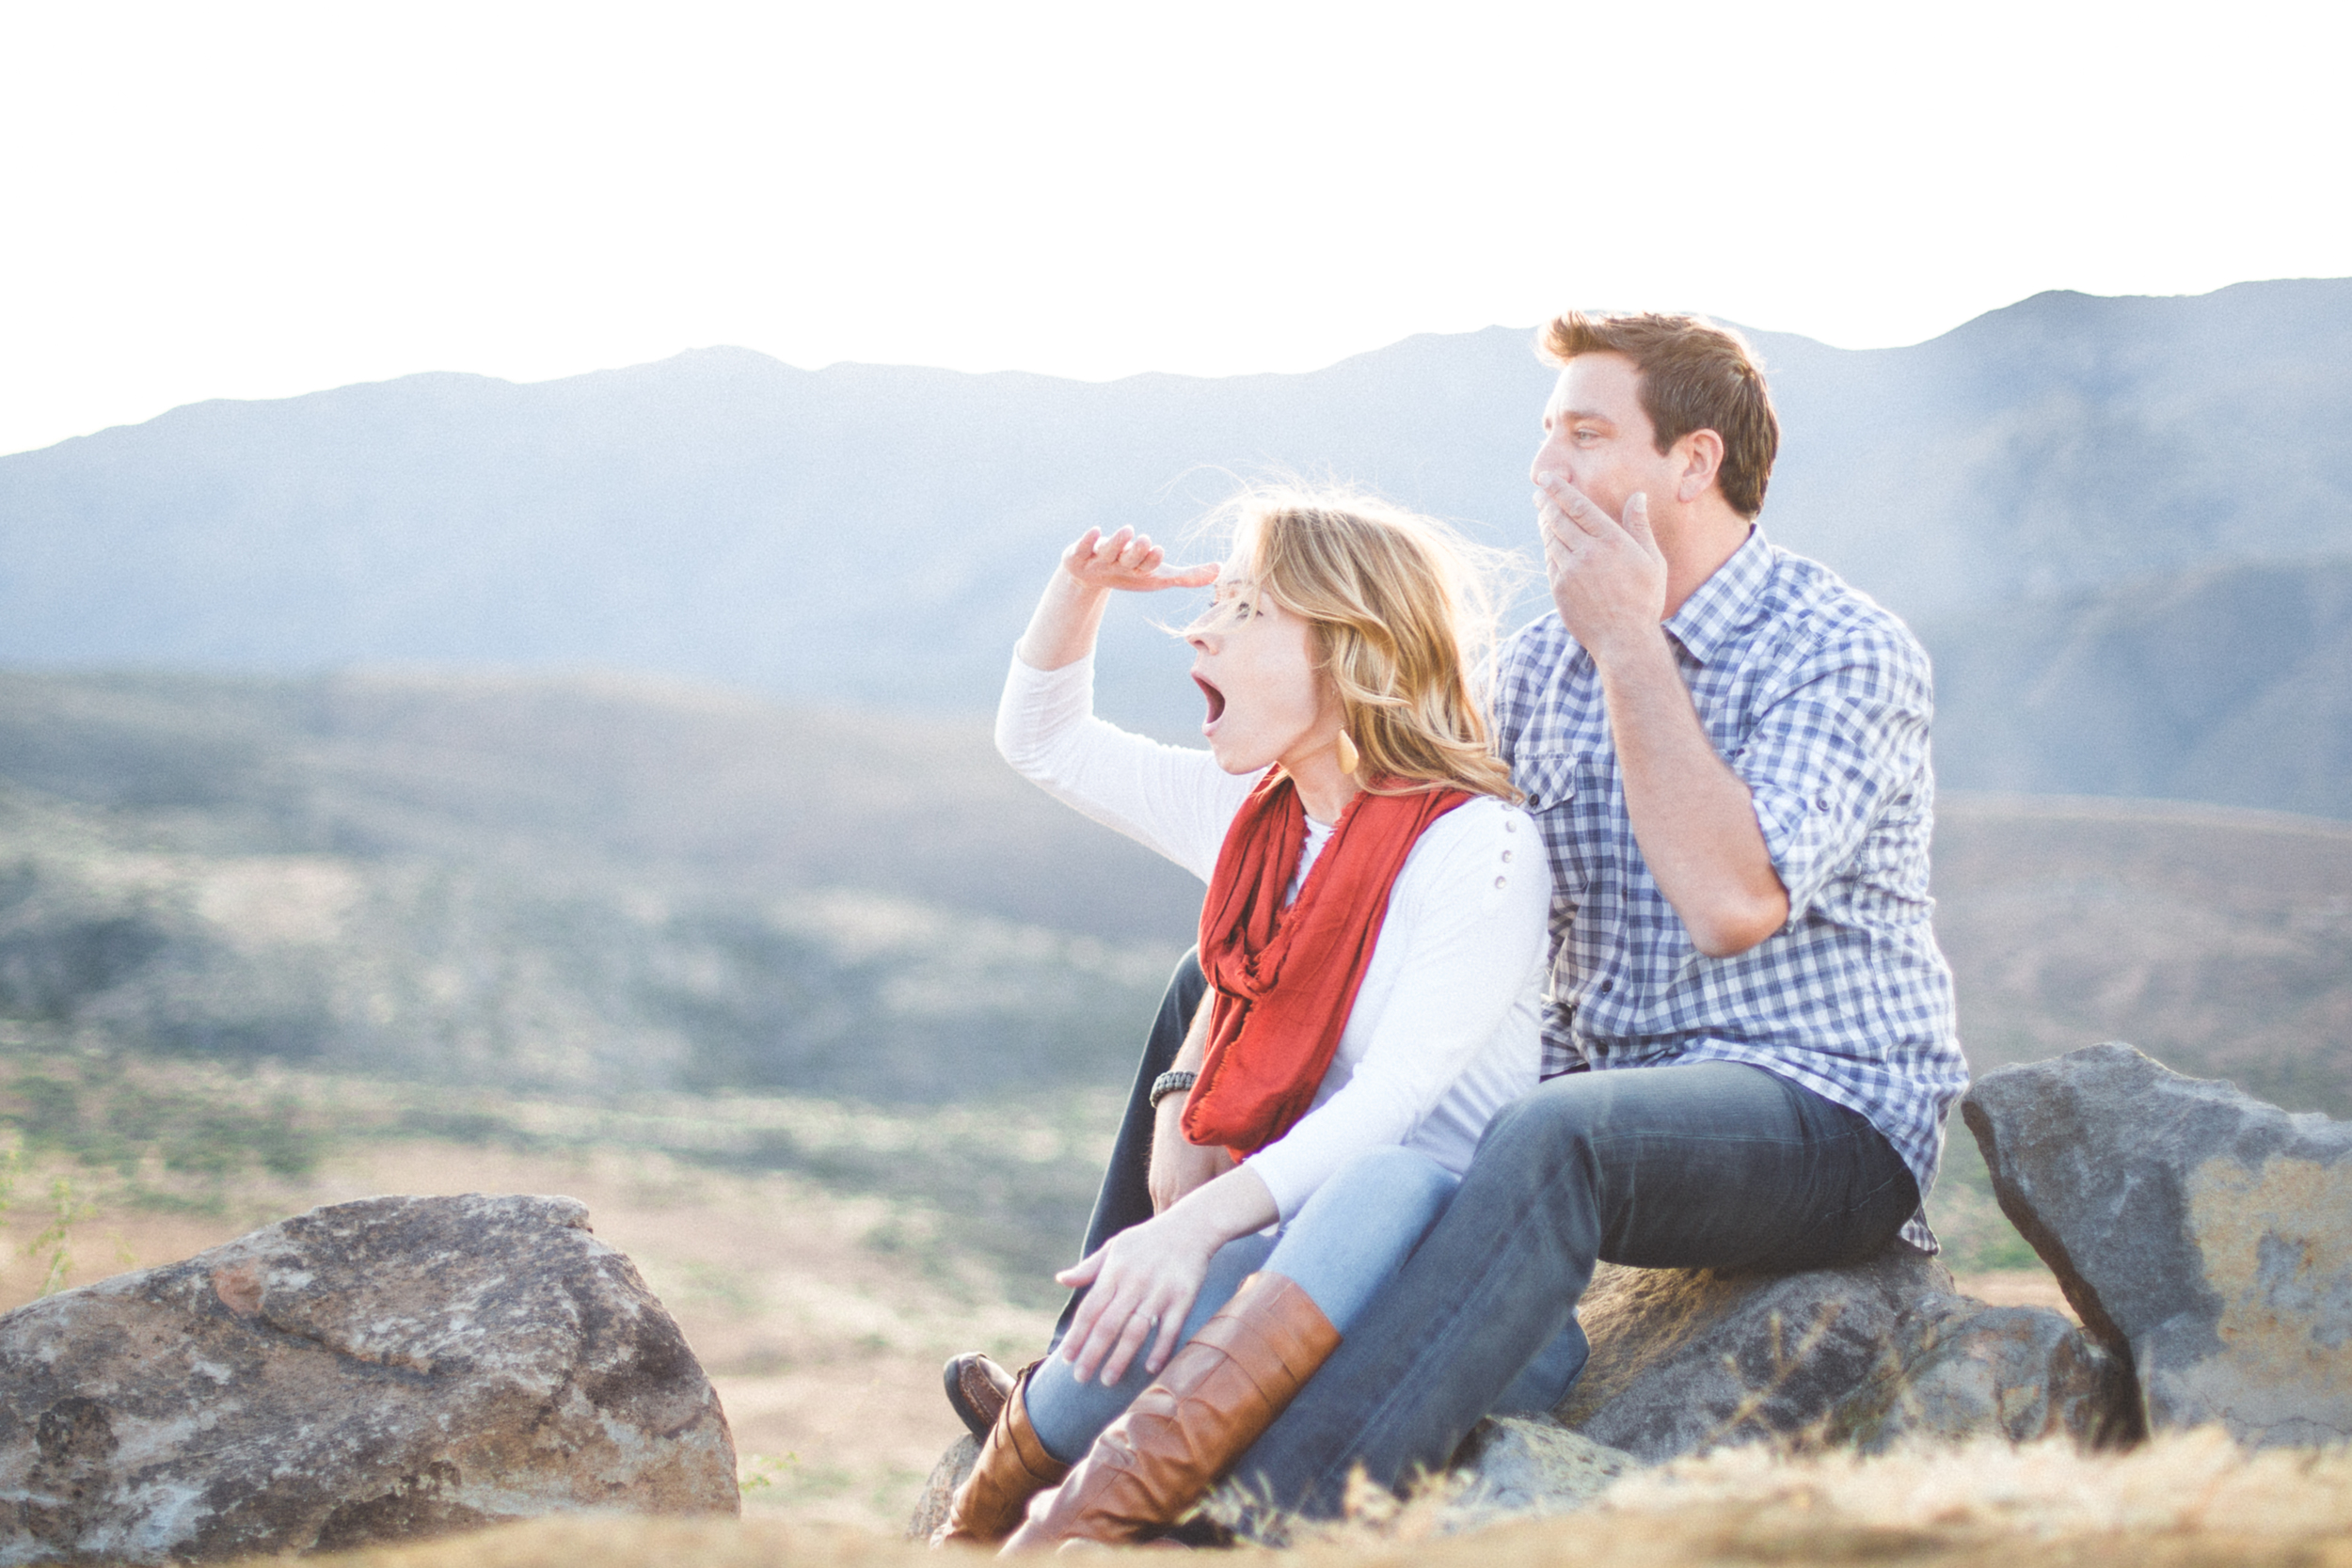 fun-engagement-photography-session-ben-andrea